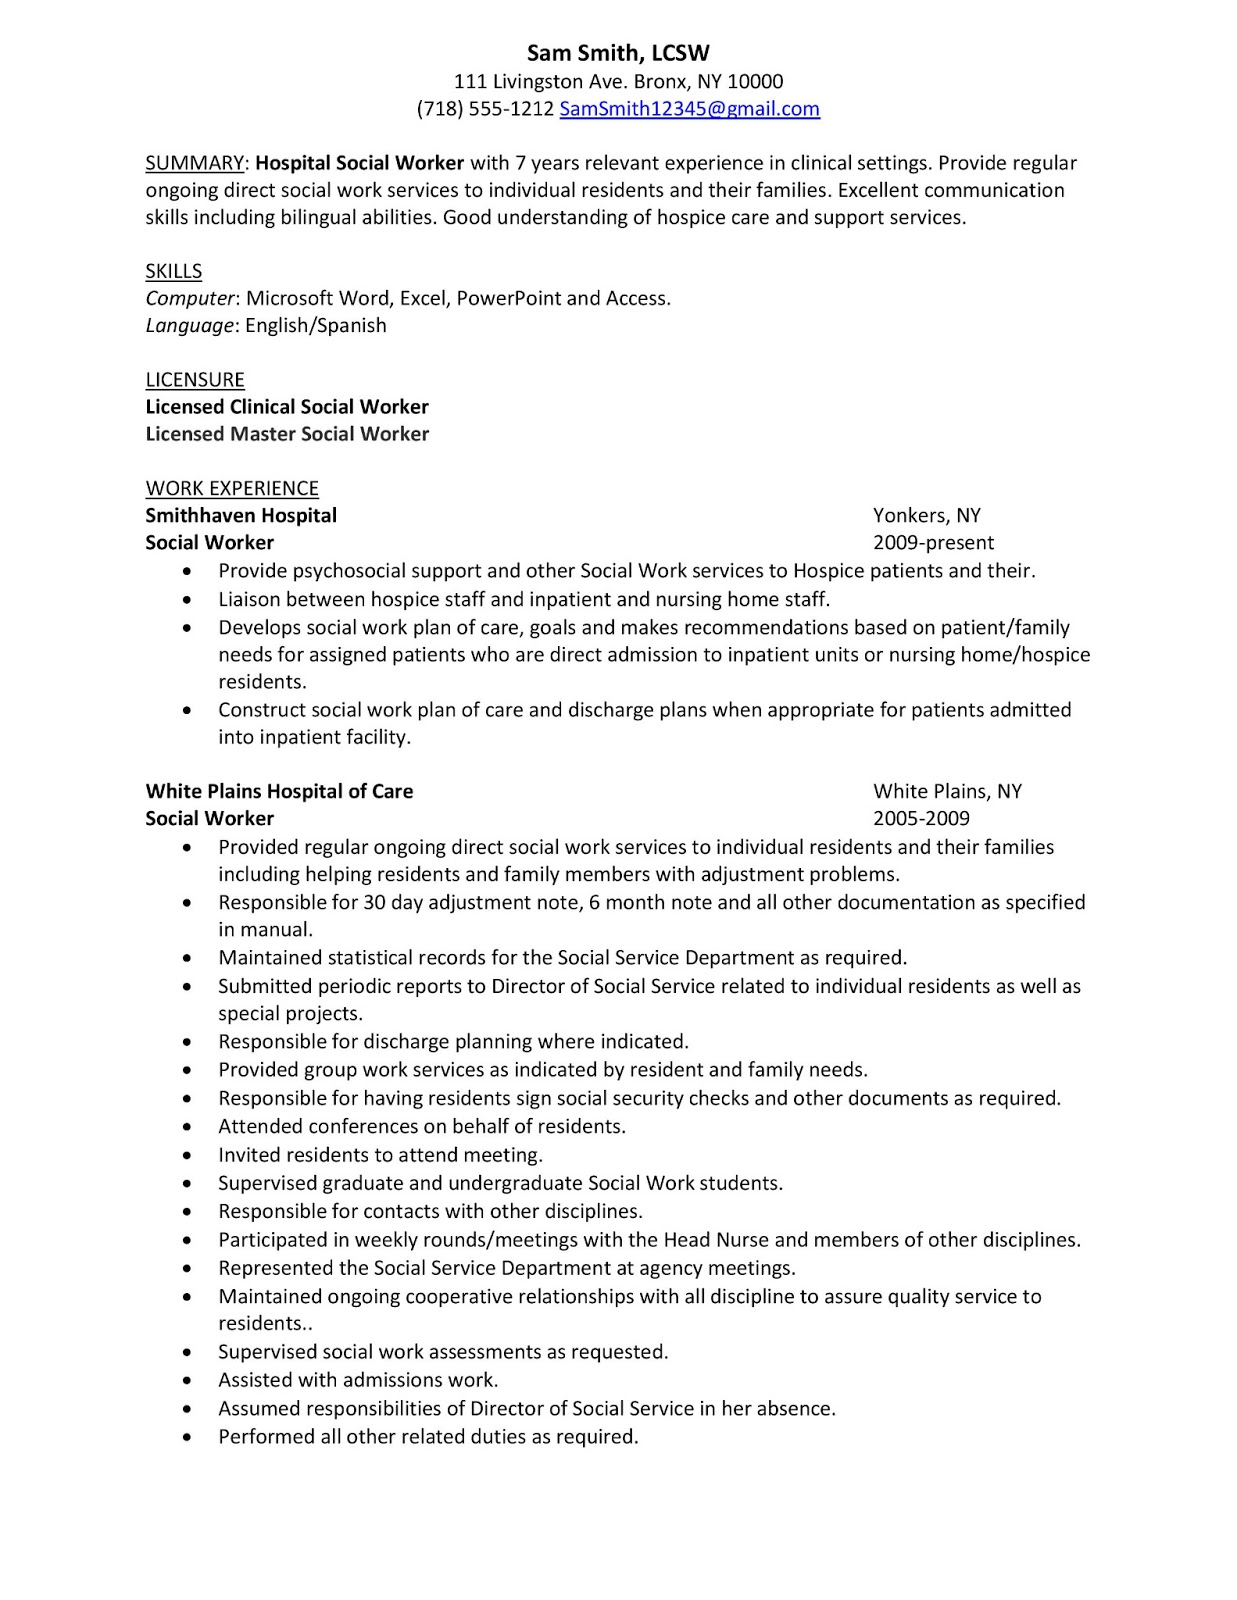 sample resume hospital social worker - Resume Format For Social Worker